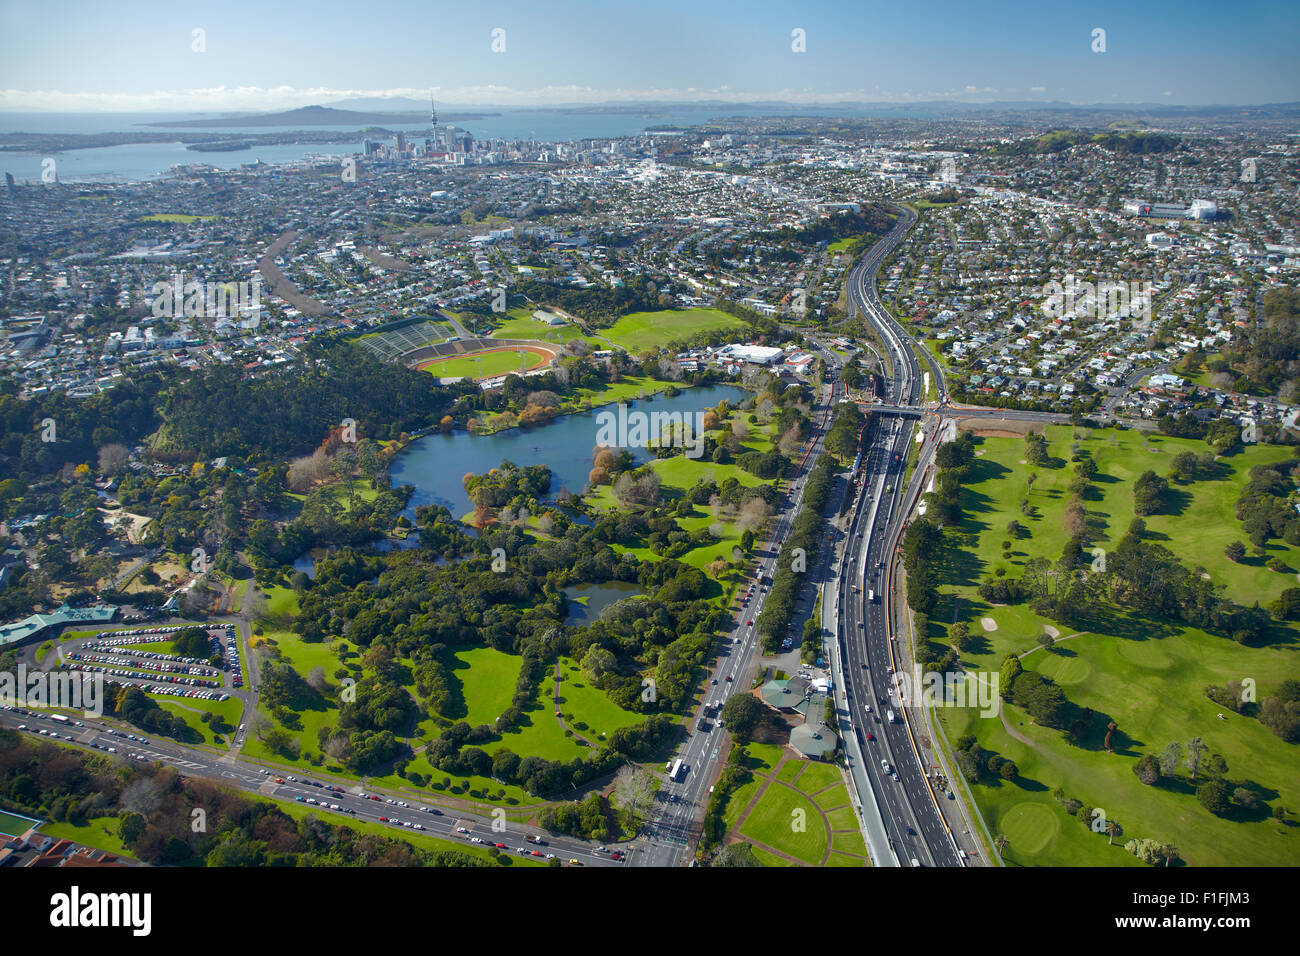 Auckland Zoo, Western Springs, North-Western Motorway, and Chamberlain Park Golf Course, Auckland, North Is, New - Stock Image